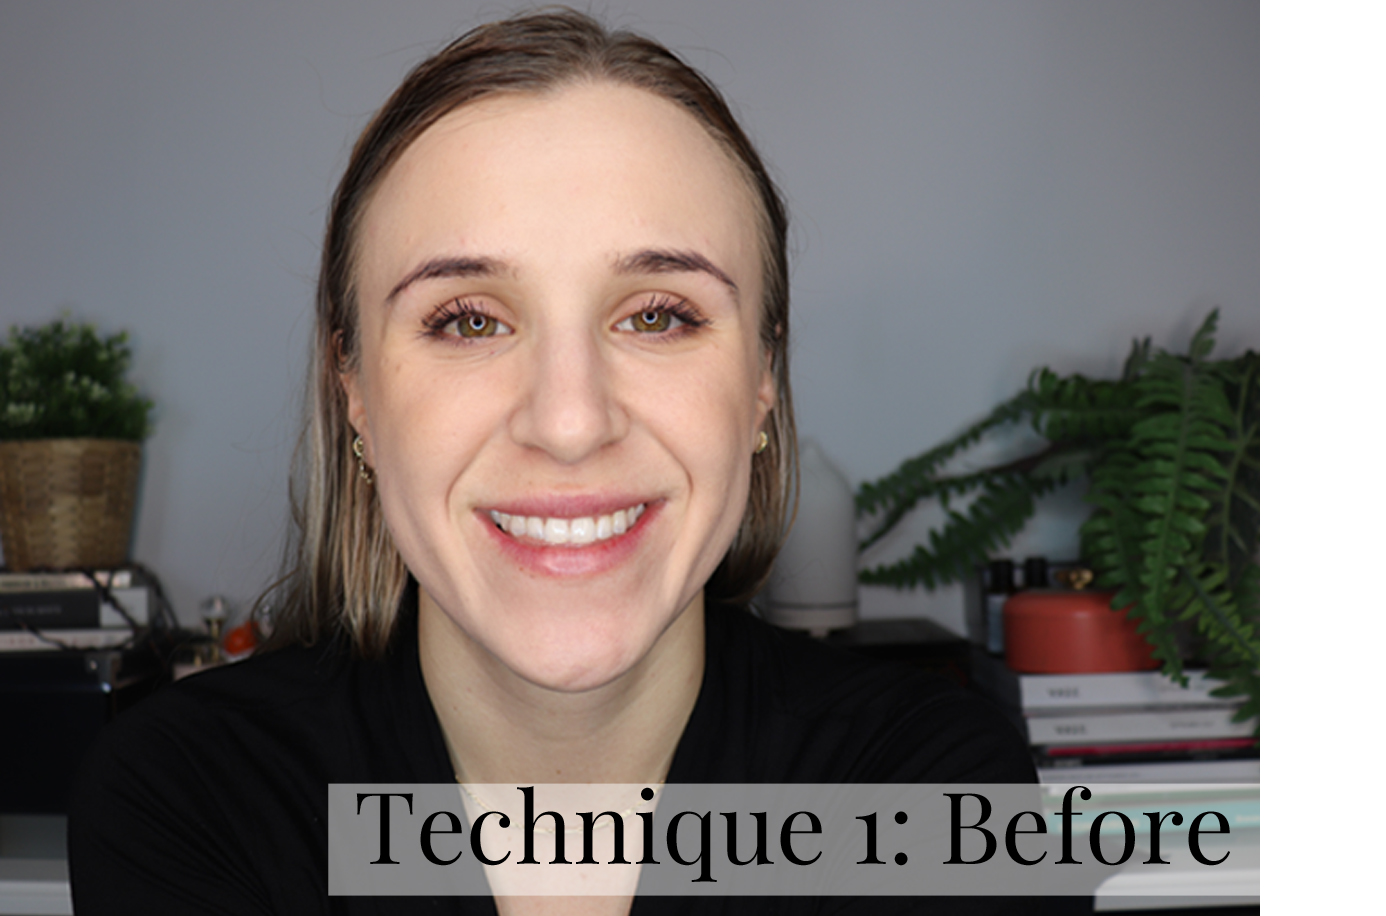 ABH Dip Brow Technique 1 Before